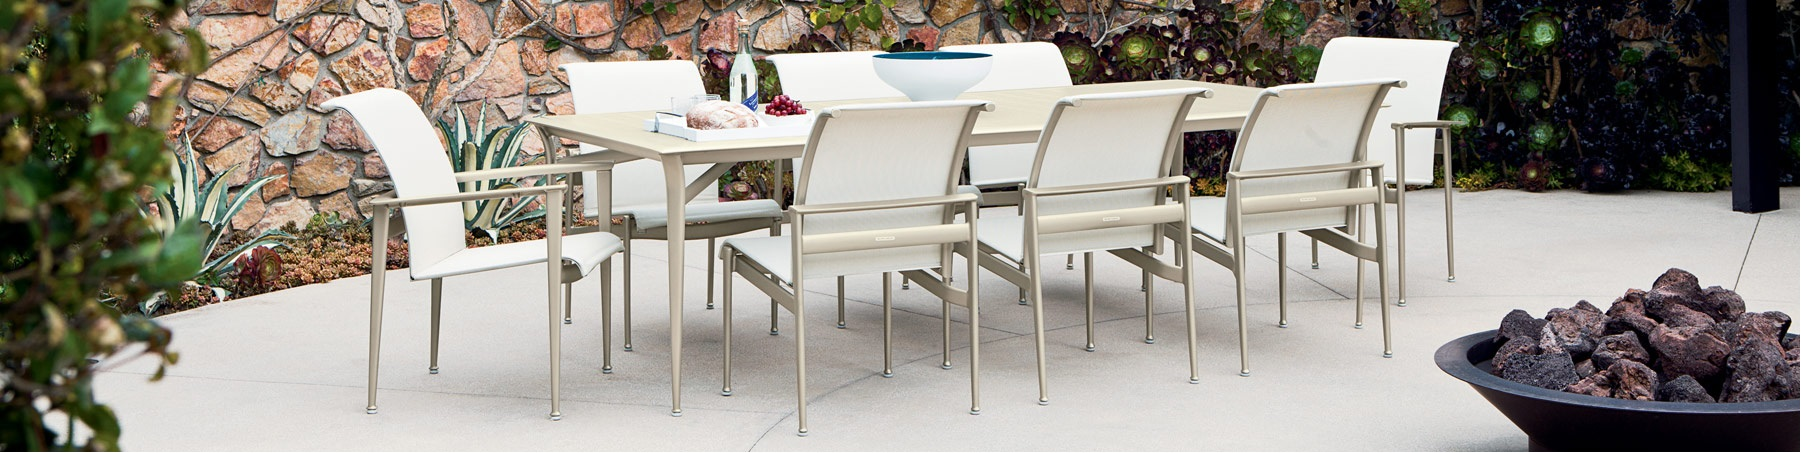 Chicago Patio Furniture | Patio Furniture Showroom Arlington Heights, IL